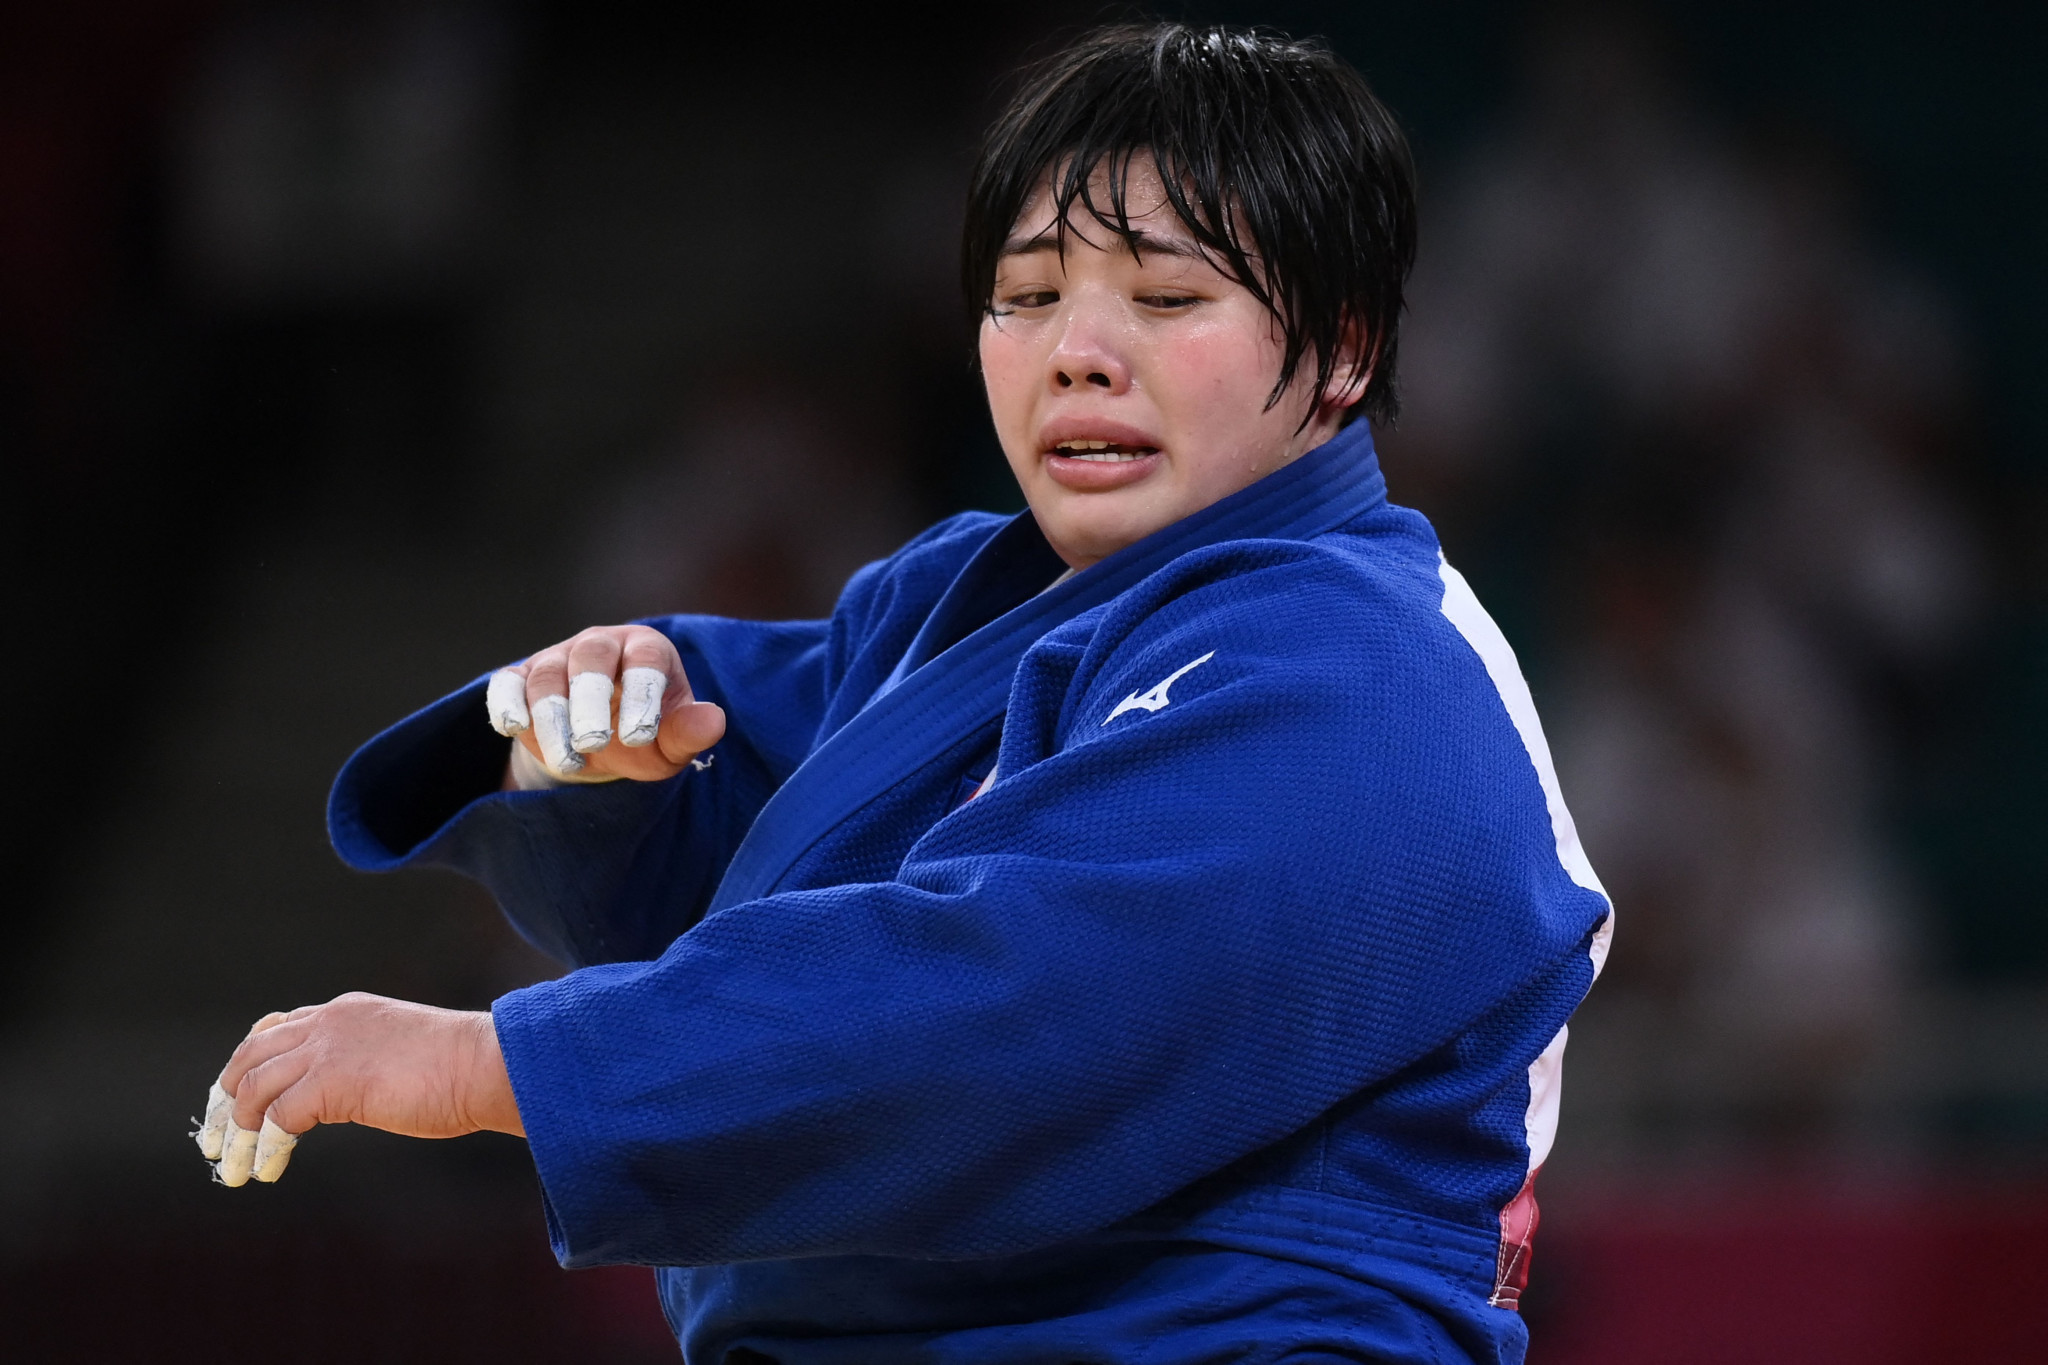 Japan win ninth Tokyo 2020 title in judo as Krpalek succeeds Riner to become two-weight champion